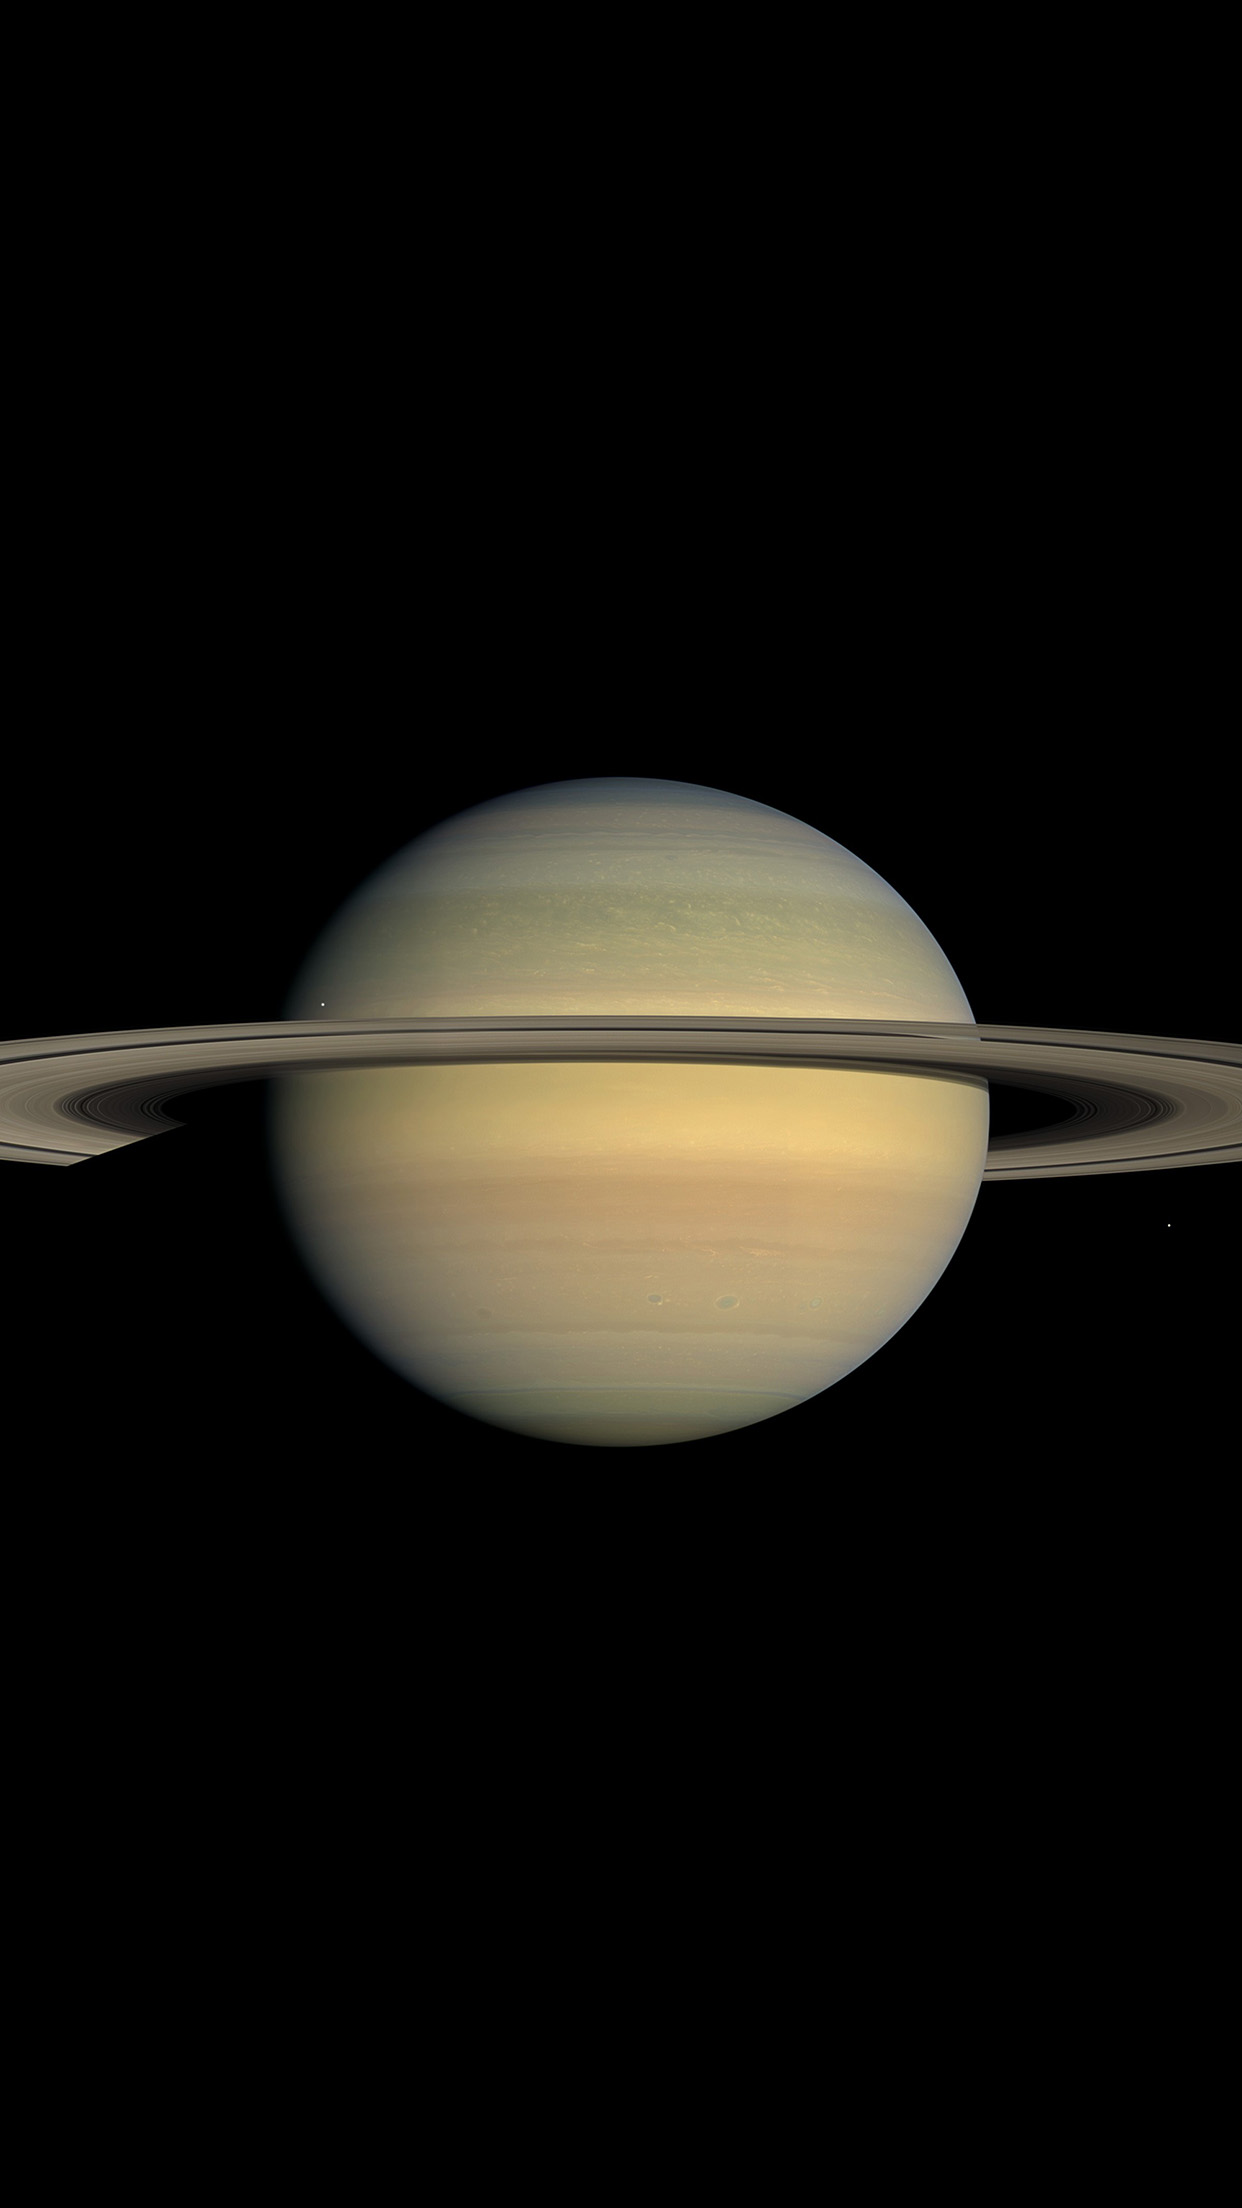 Saturn Space Star Nature Art Illustration Android wallpaper